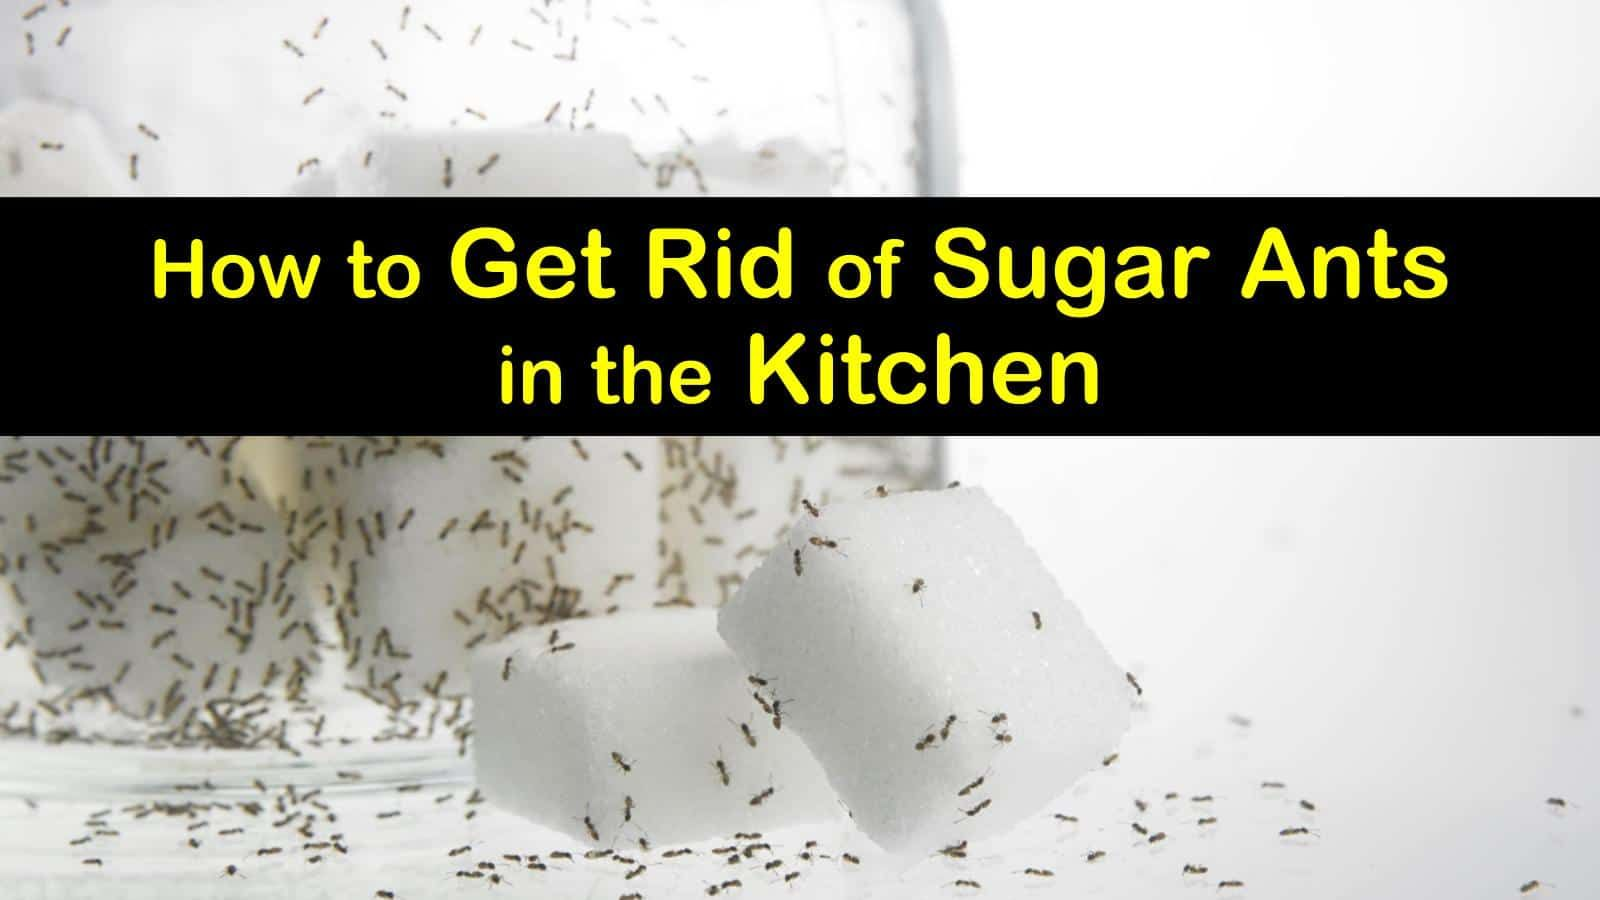 4 Simple Ways to Get Rid of Sugar Ants in the Kitchen